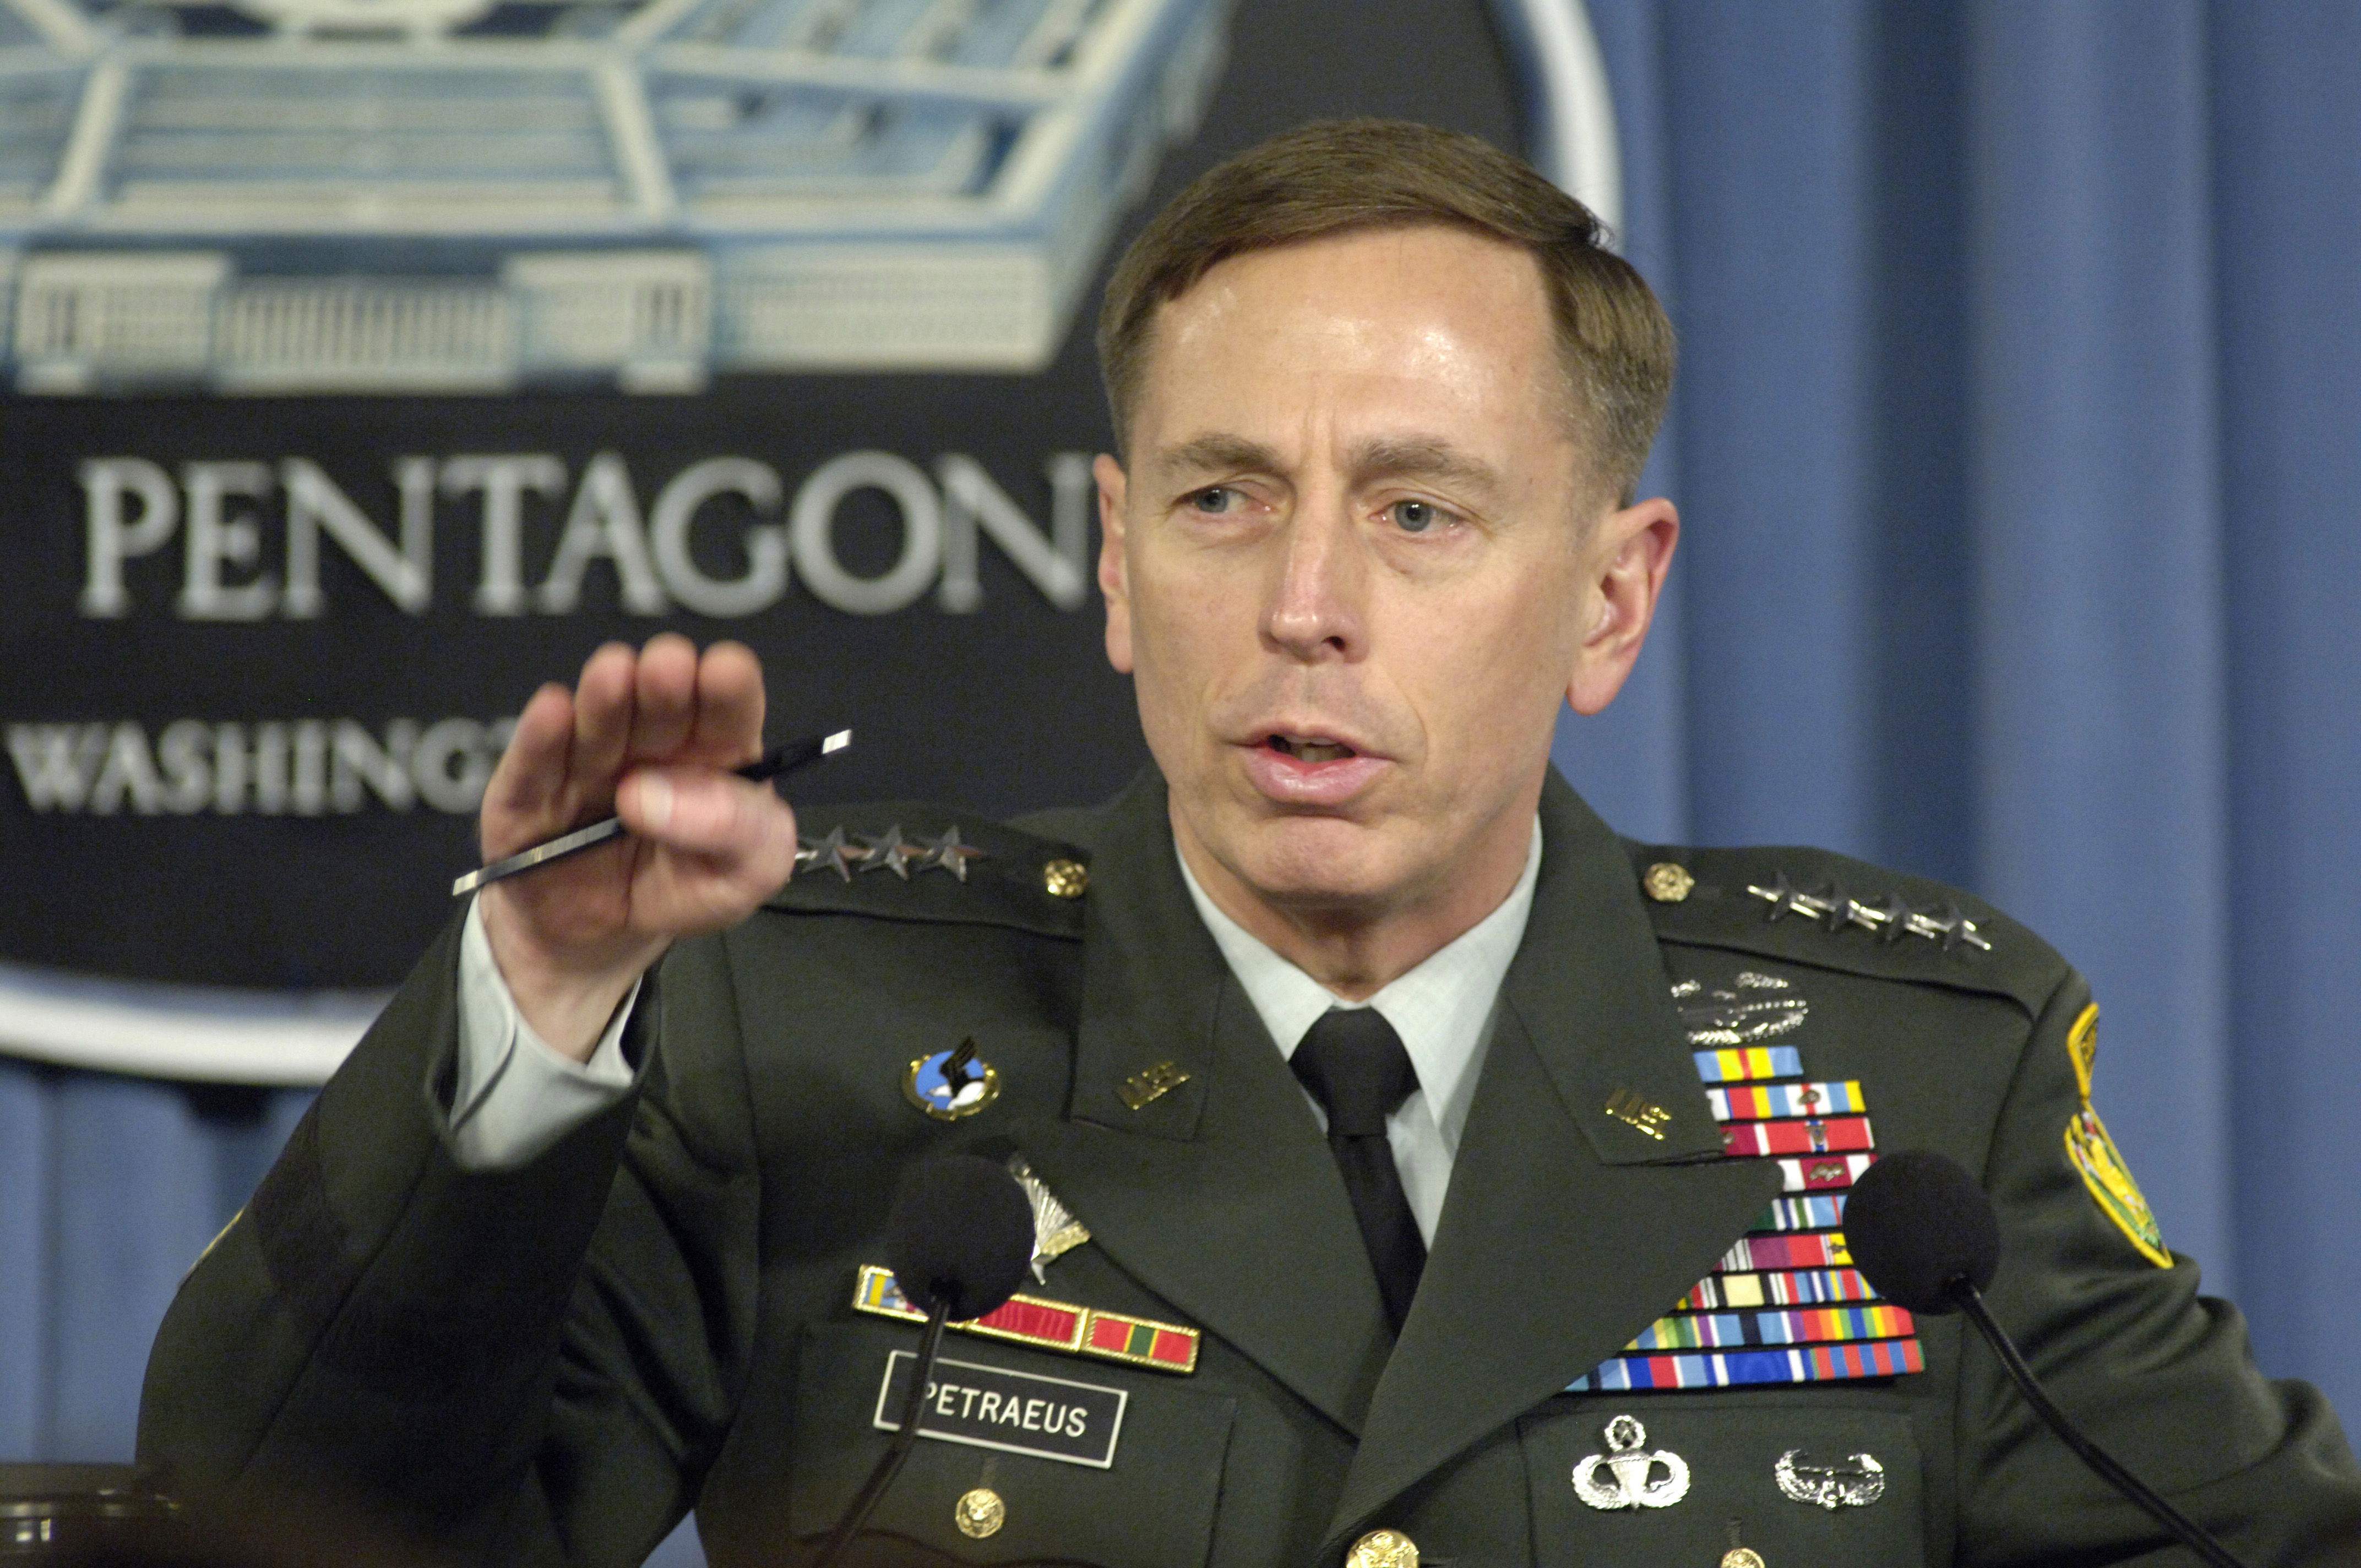 general david petraeus dissertation Retired us army general david h petraeus speaks on campus about good  and evil, his experience with war gen david petraeus (us army, retired.